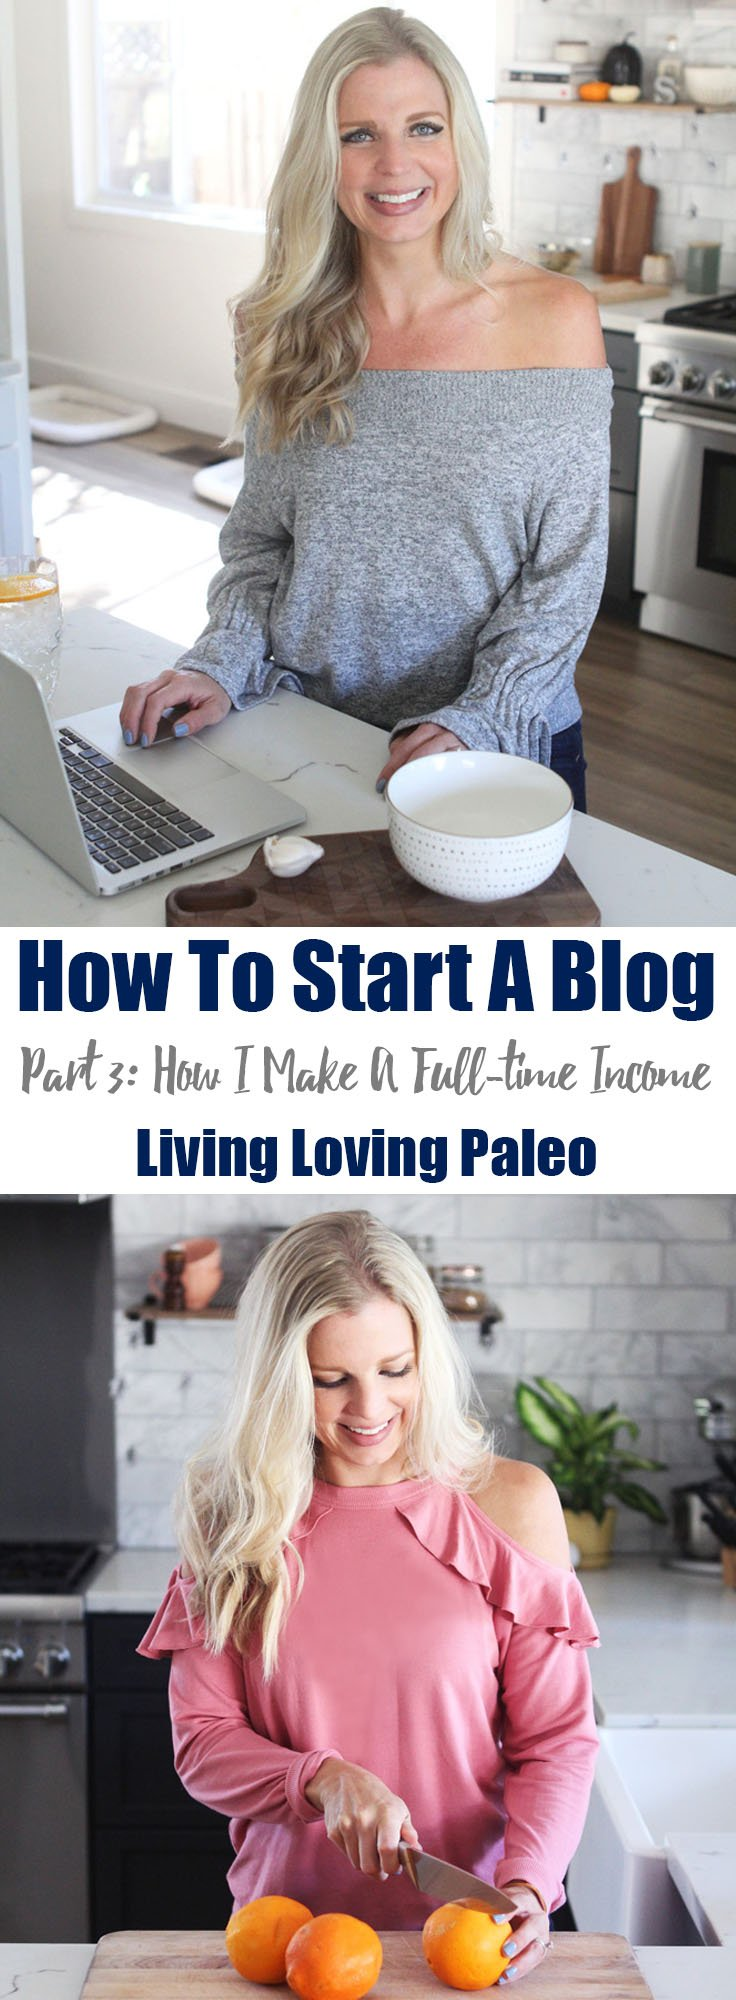 How To Start A Blog – Part 3: How I Make A Full-time Income